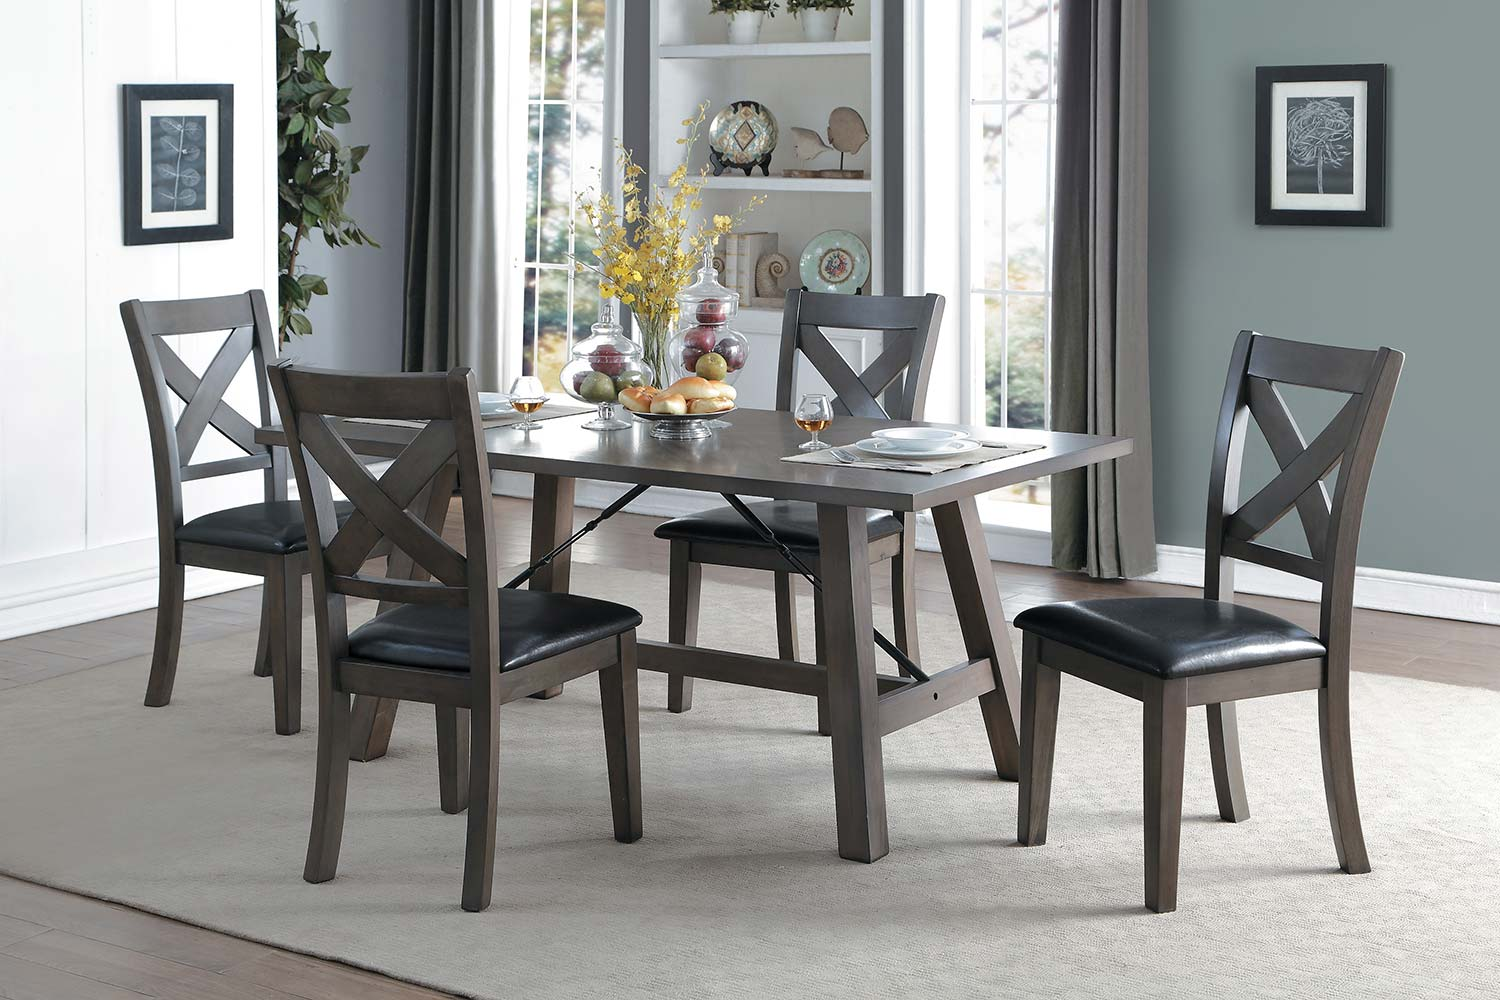 Homelegance Seaford Rectangular Dining Set - Gray tone